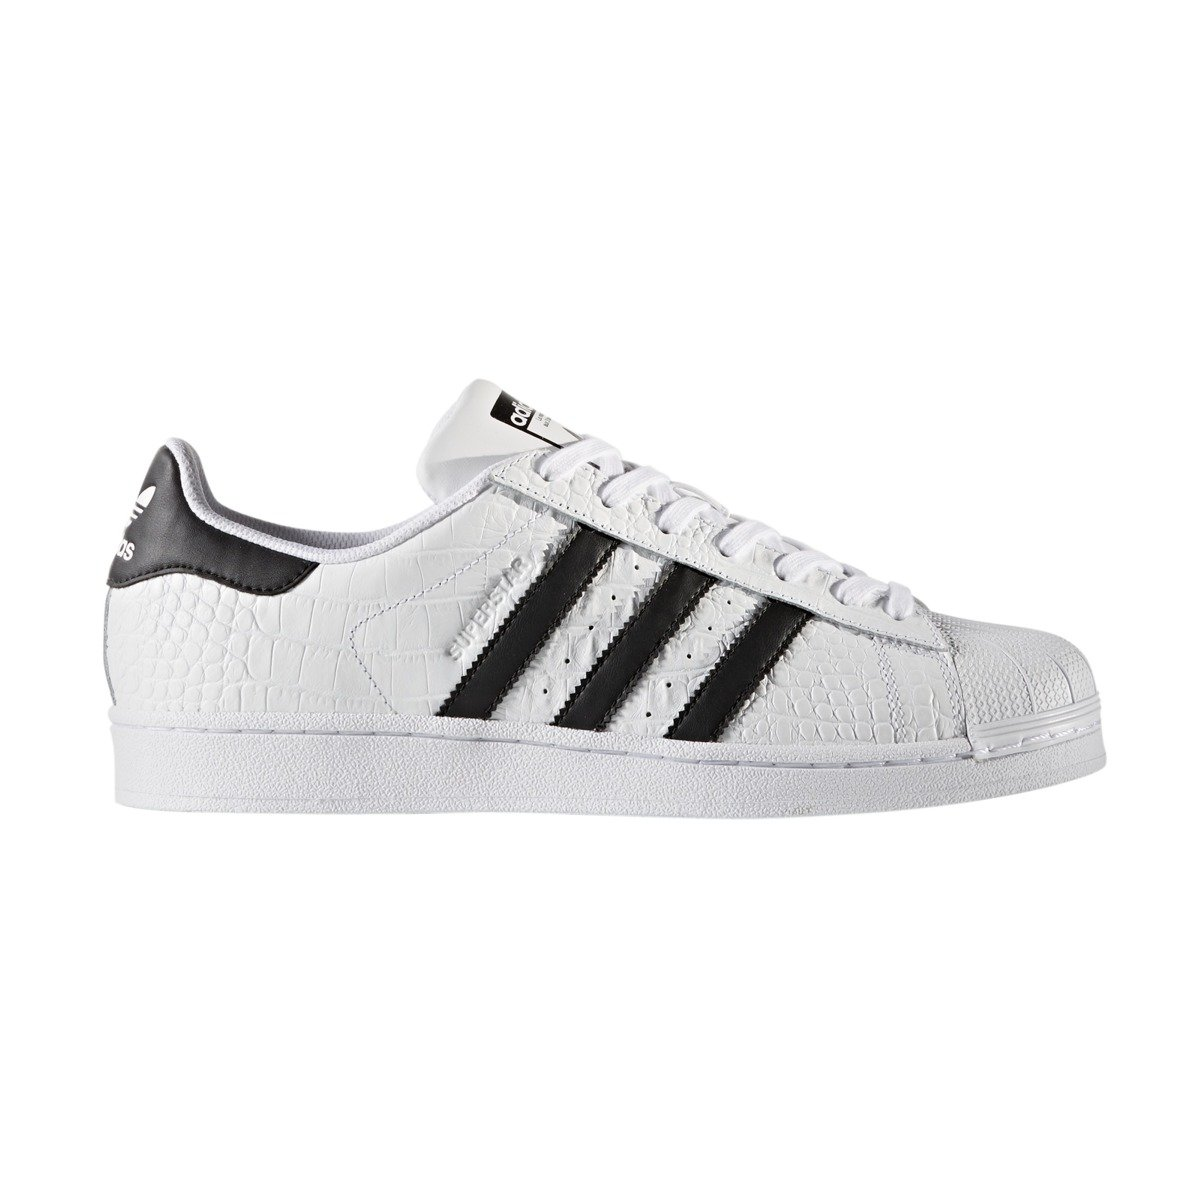 Schuhe Bz0198 Adidas Animal Superstar Originals Print srhQdt